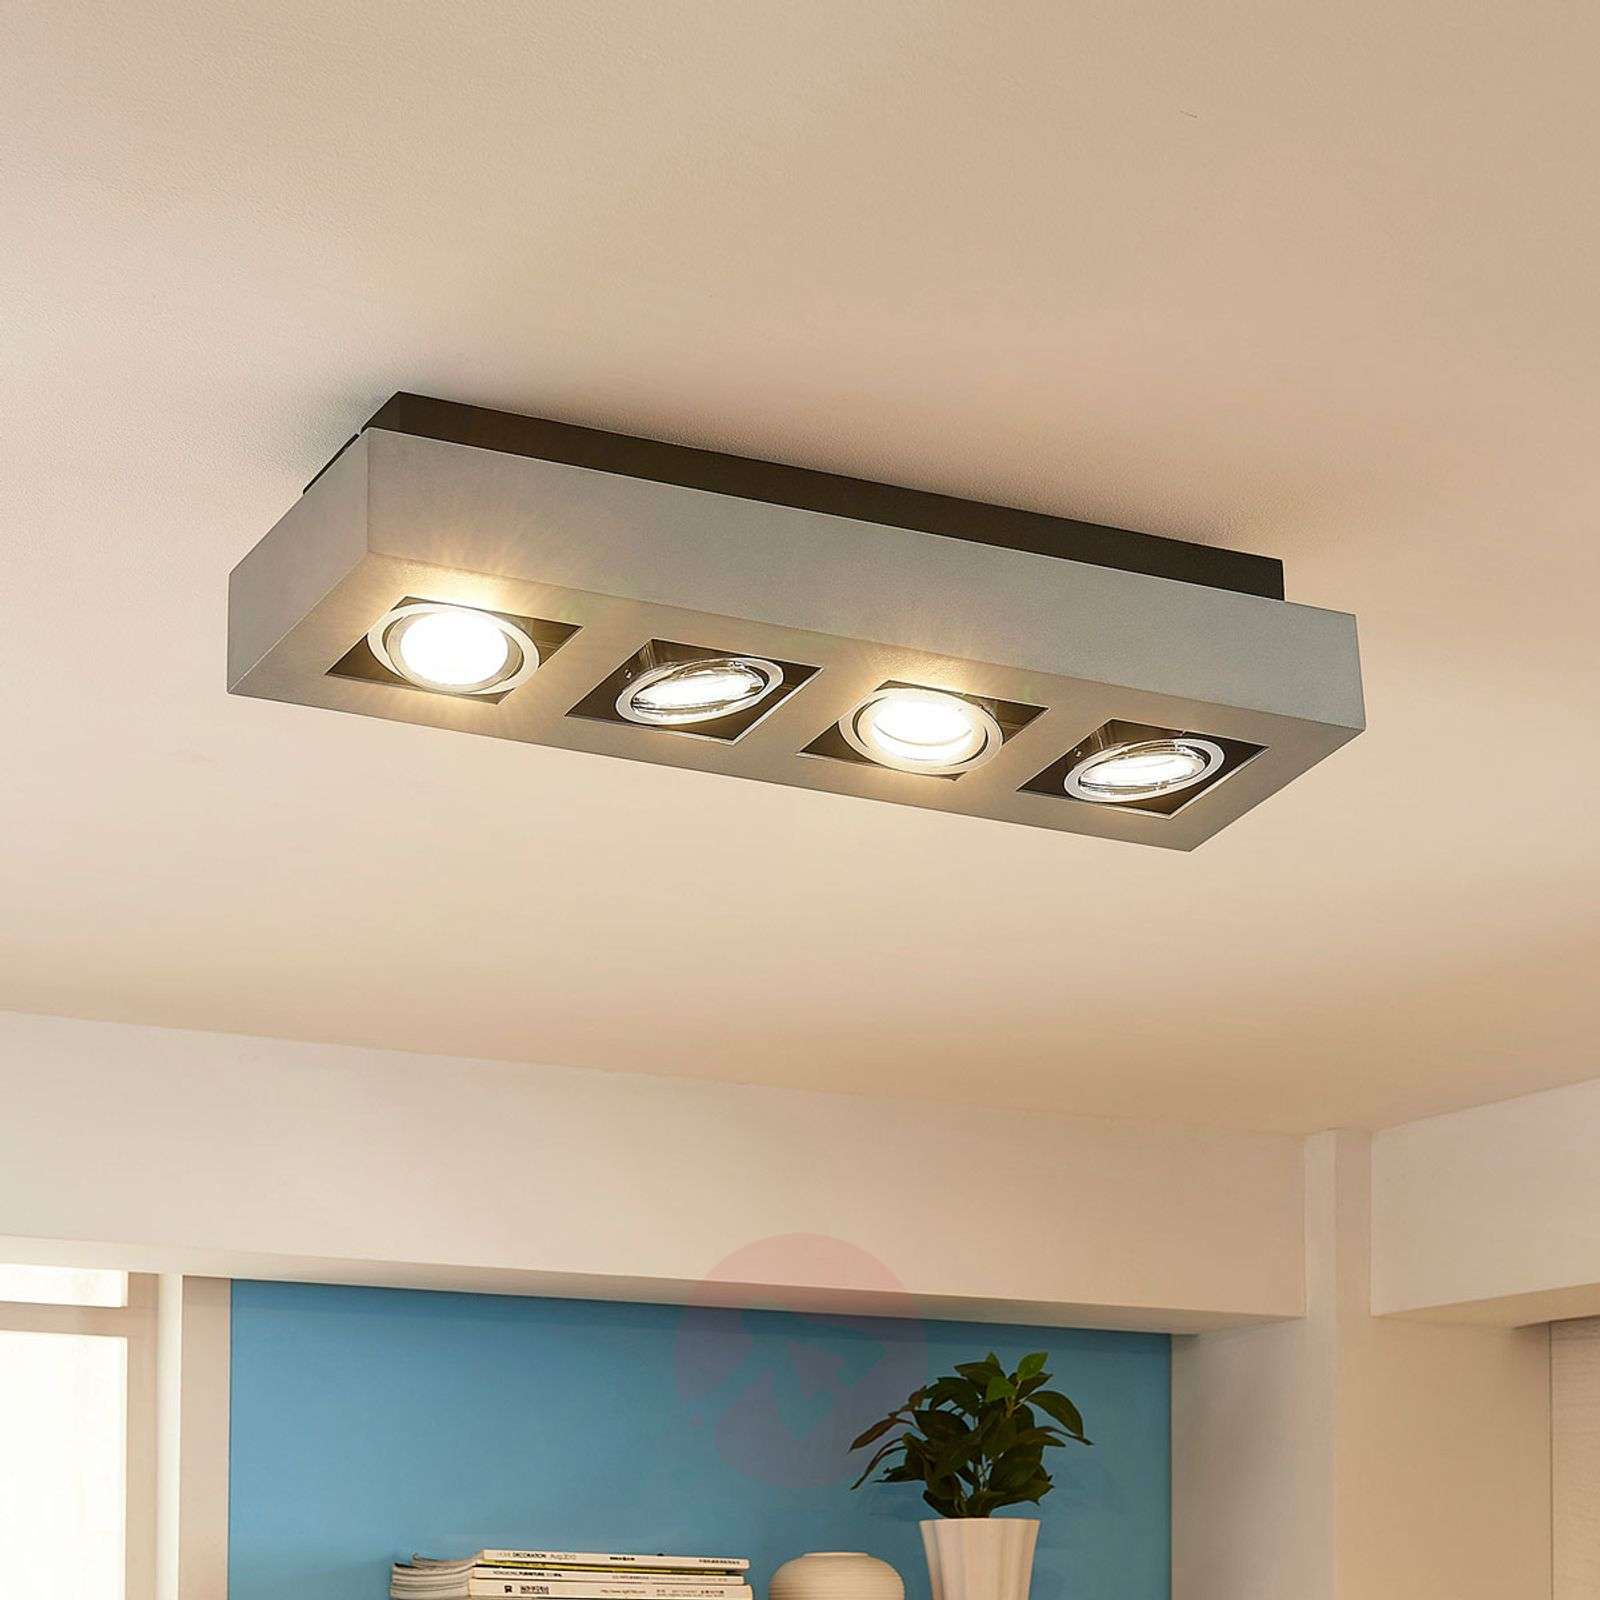 Full size of ceiling light fixtures kitche installing led for Number of recessed lights per room